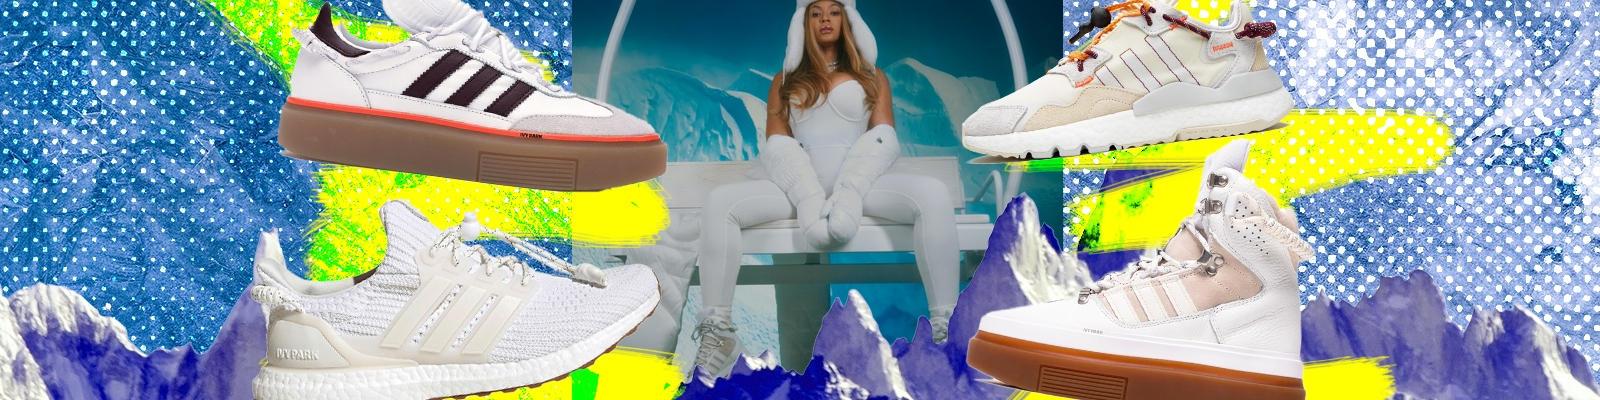 Every Sneaker From Beyonce's IVY PARK Adidas Line, Ranked (Including The New Icy Park Collection)